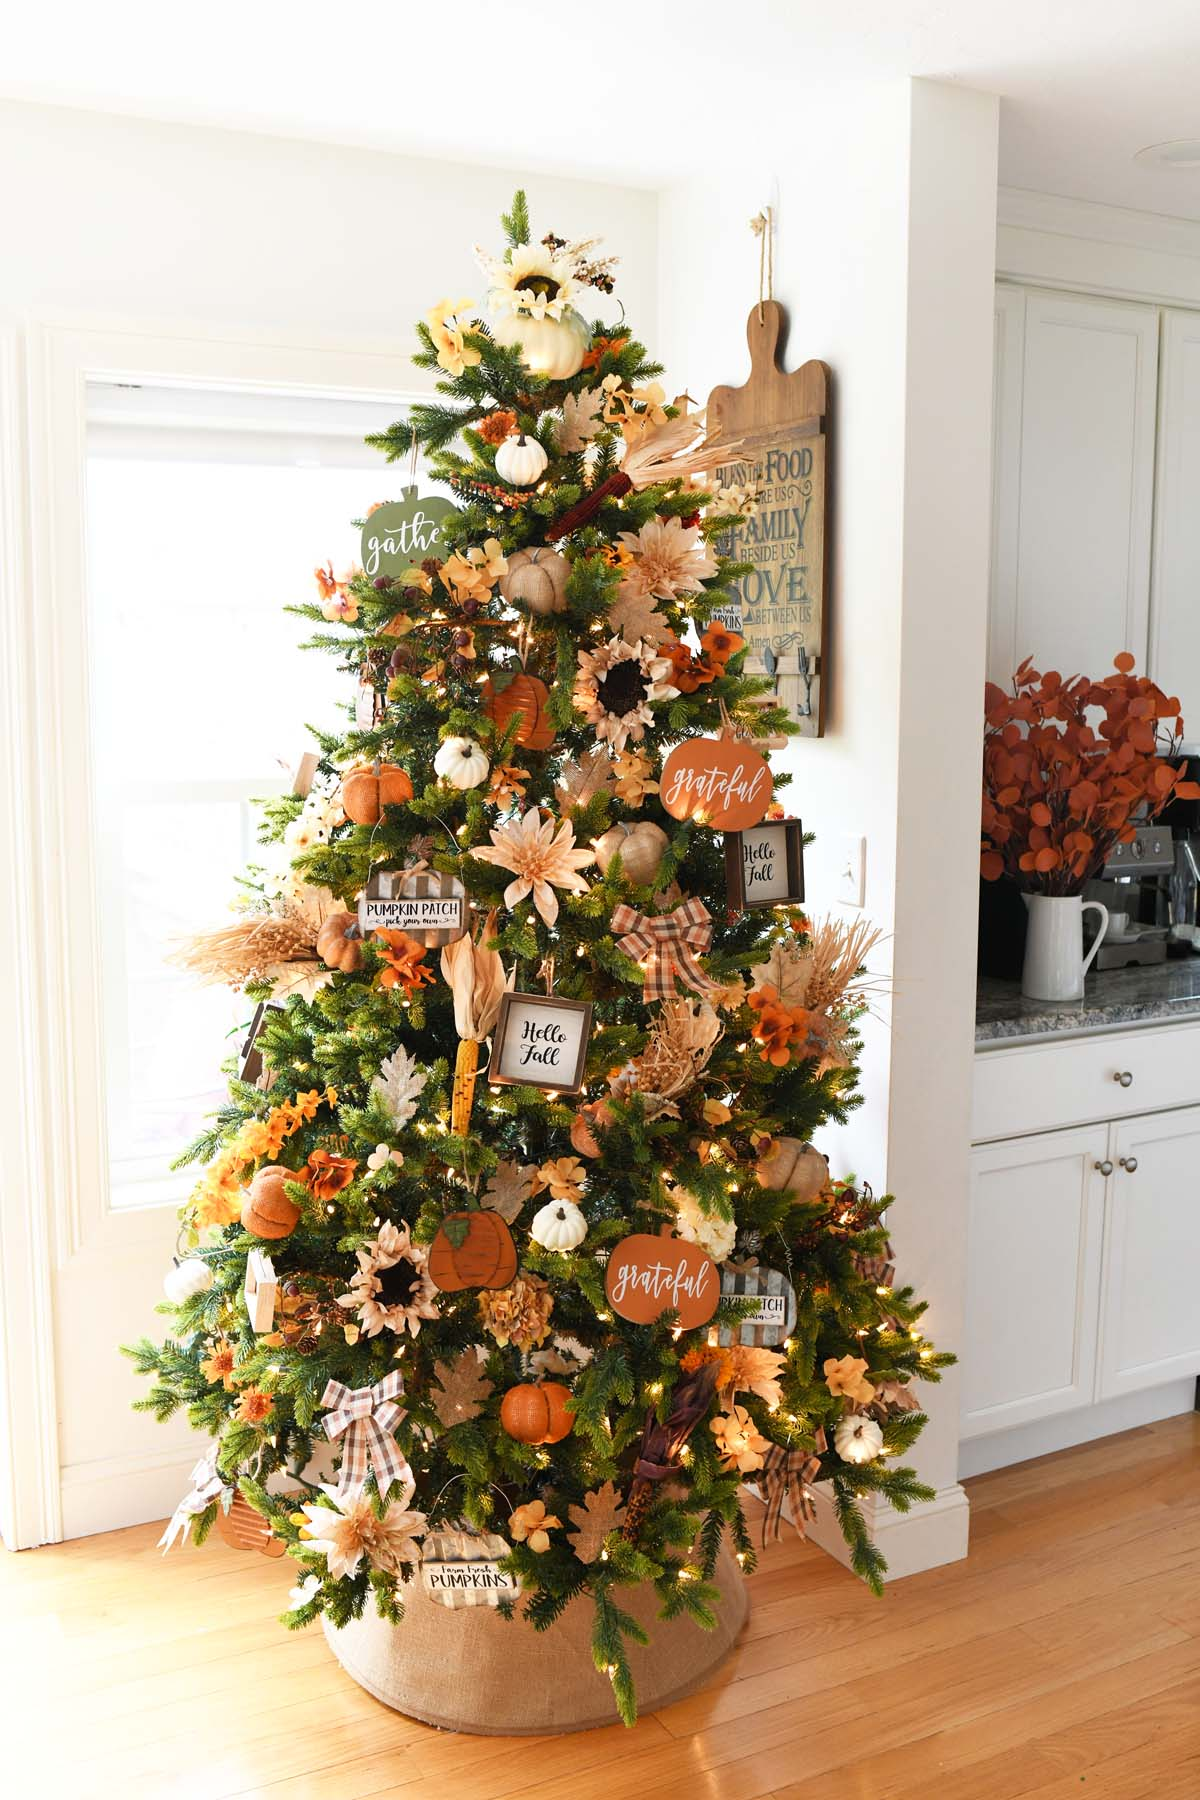 Harvest Christmas Tree decorated in the dining room.